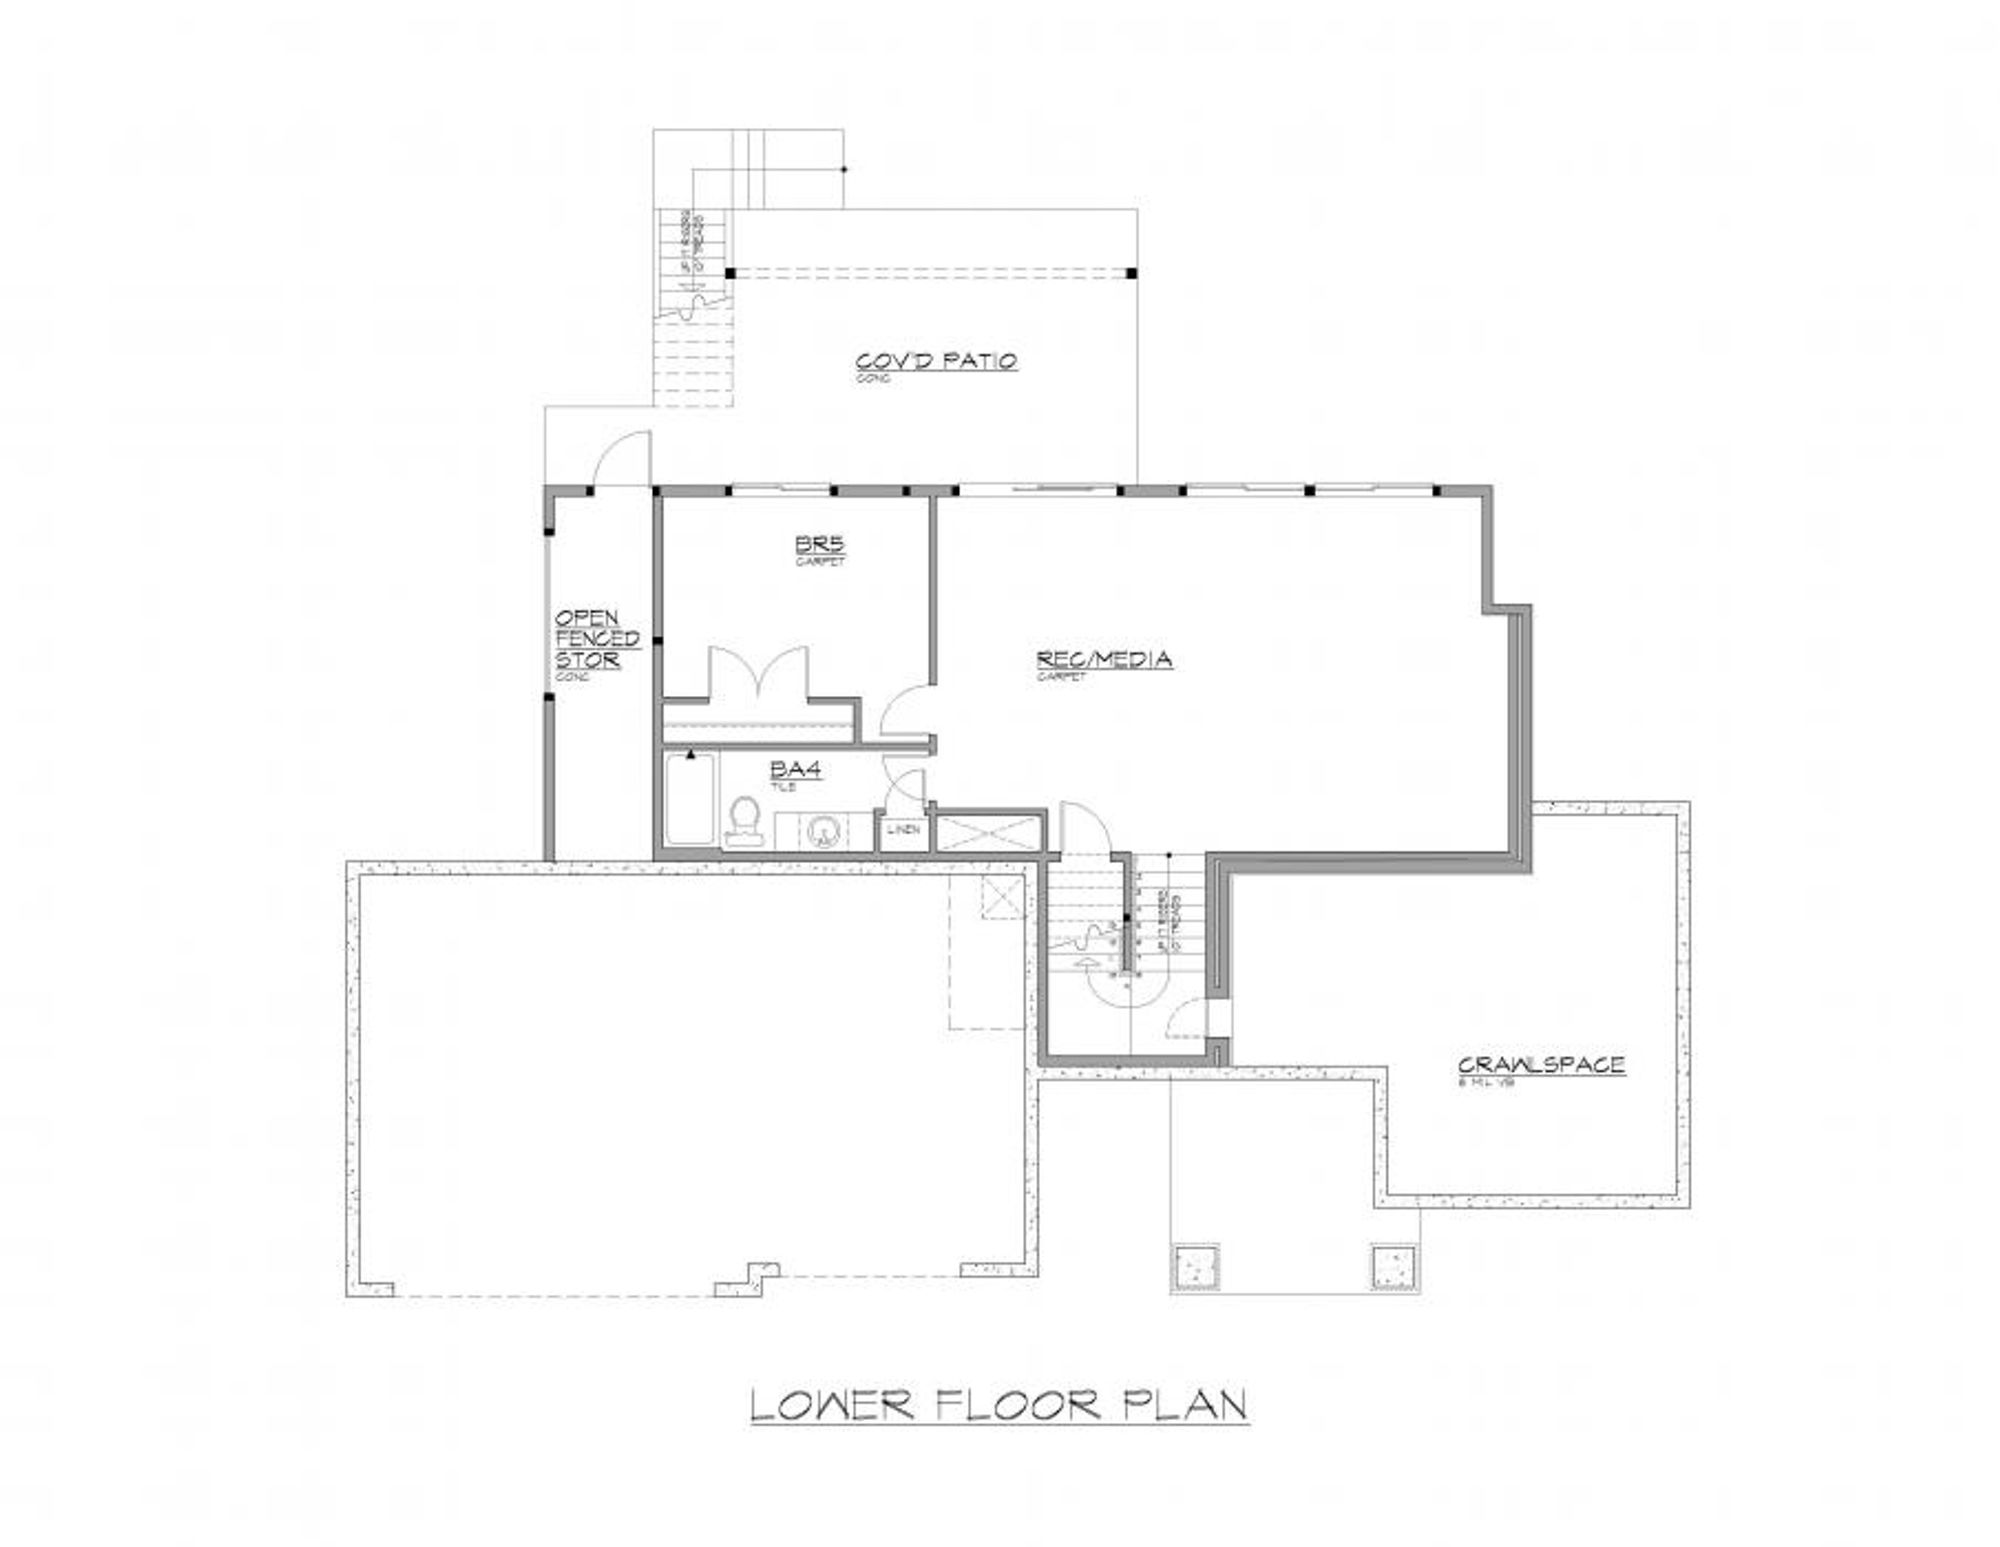 Lisbon Lower Floor Plan